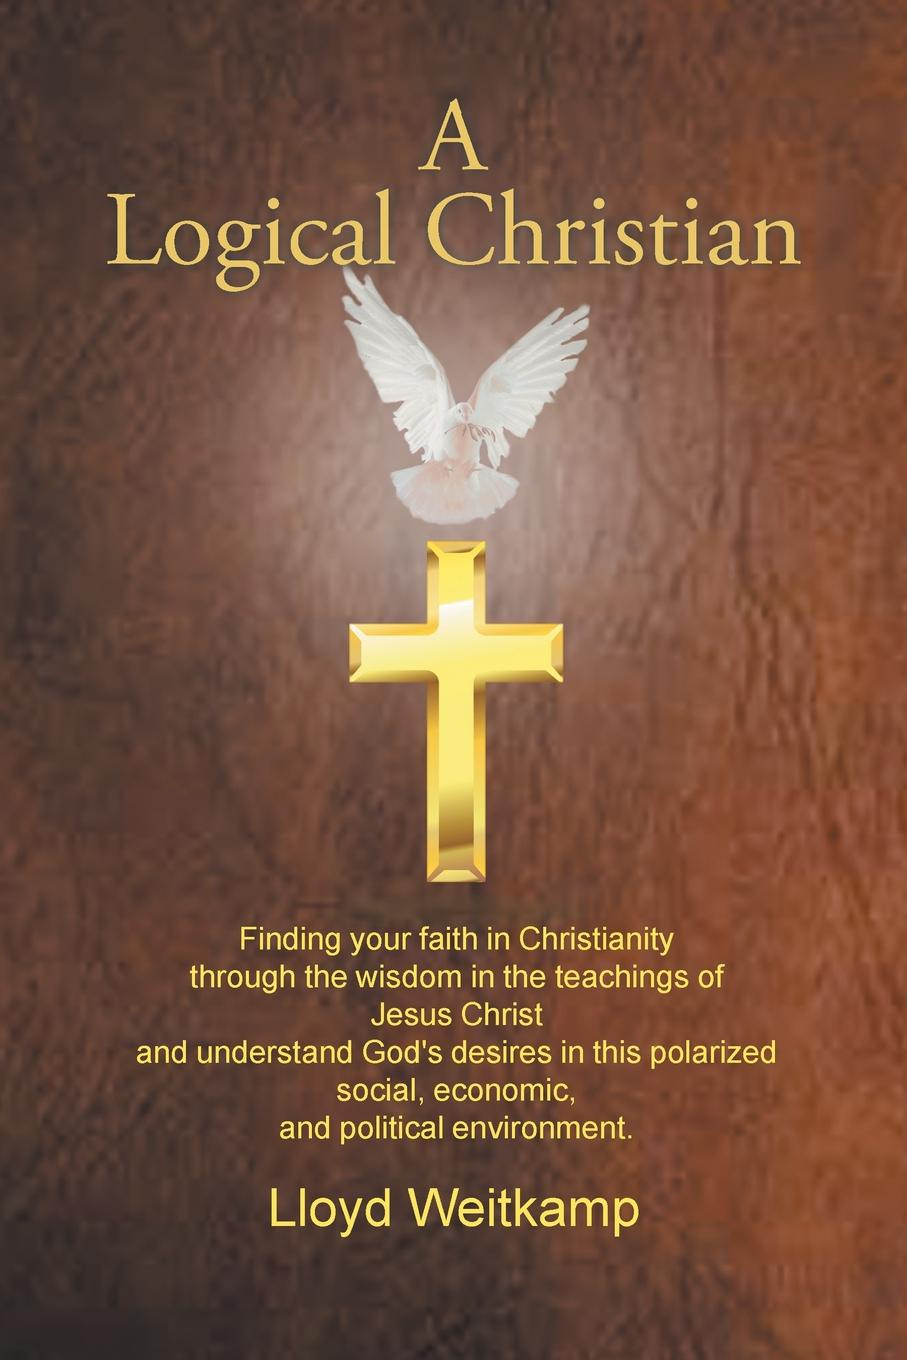 Lloyd Weitkamp A Logical Christian. Finding your faith in Christianity through the wisdom in the teachings of Jesus Christ and understand God's desires in this polarized social, economic, and political environment. geek wisdom the sacred teachings of nerd culture